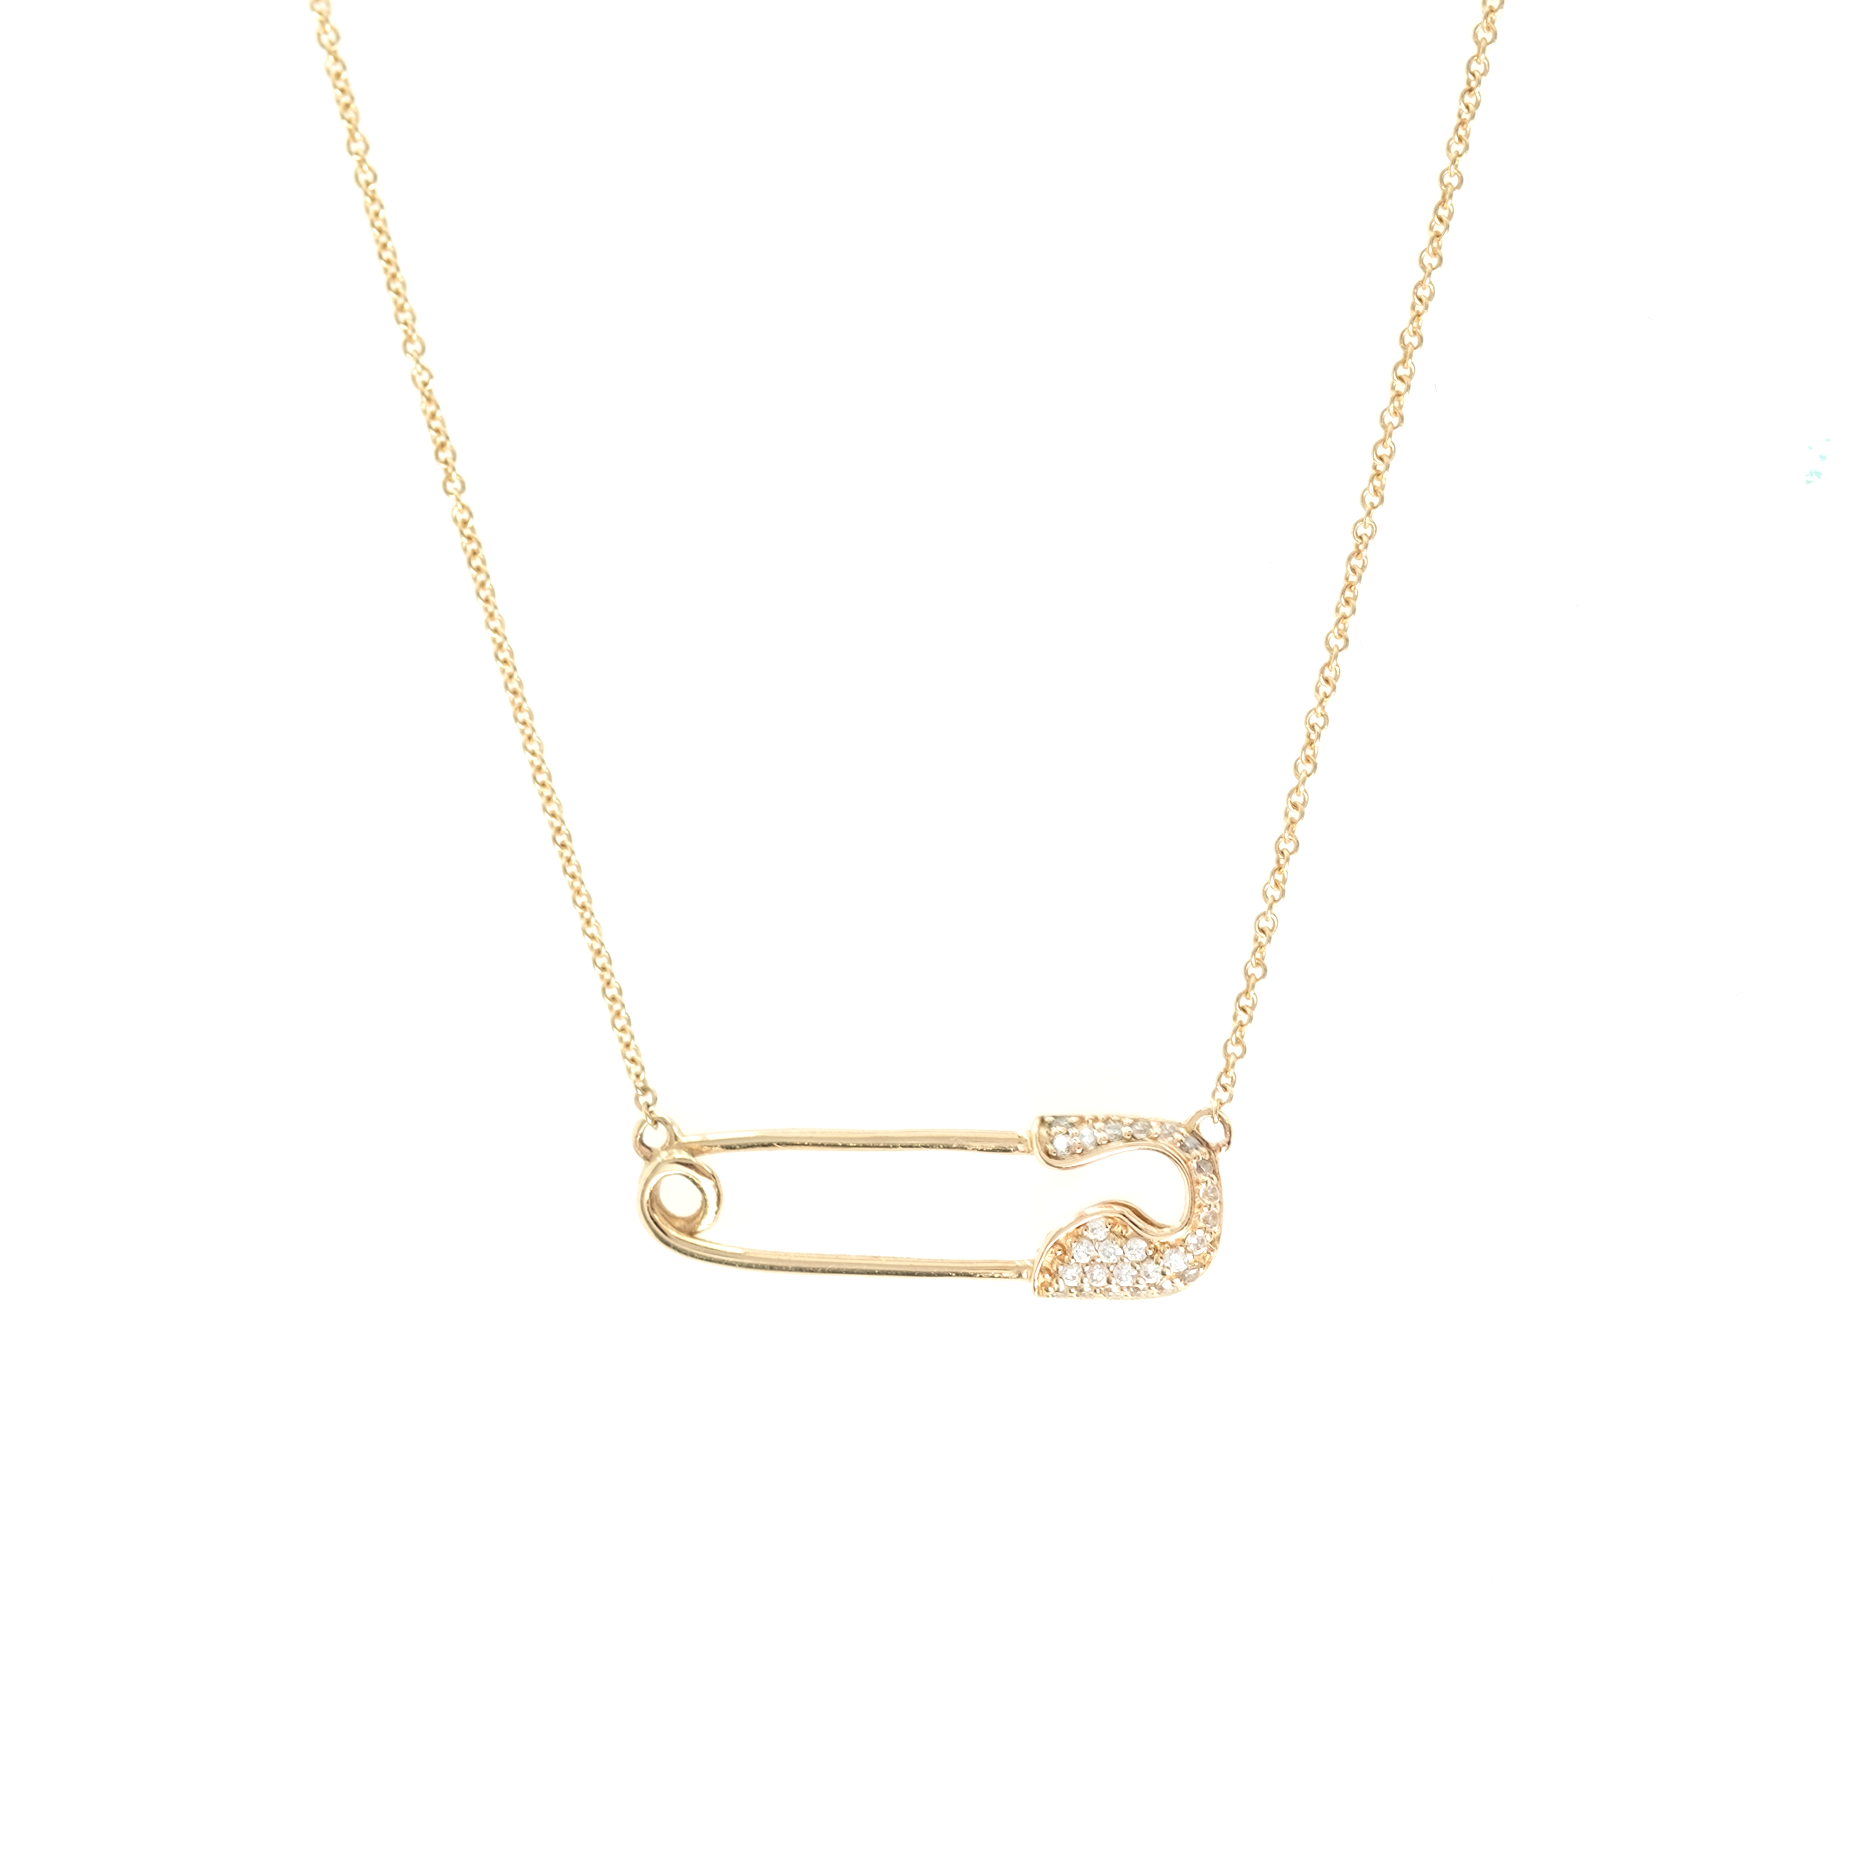 WHITE GOLD PAVÉ SAFETY PIN NECKLACE